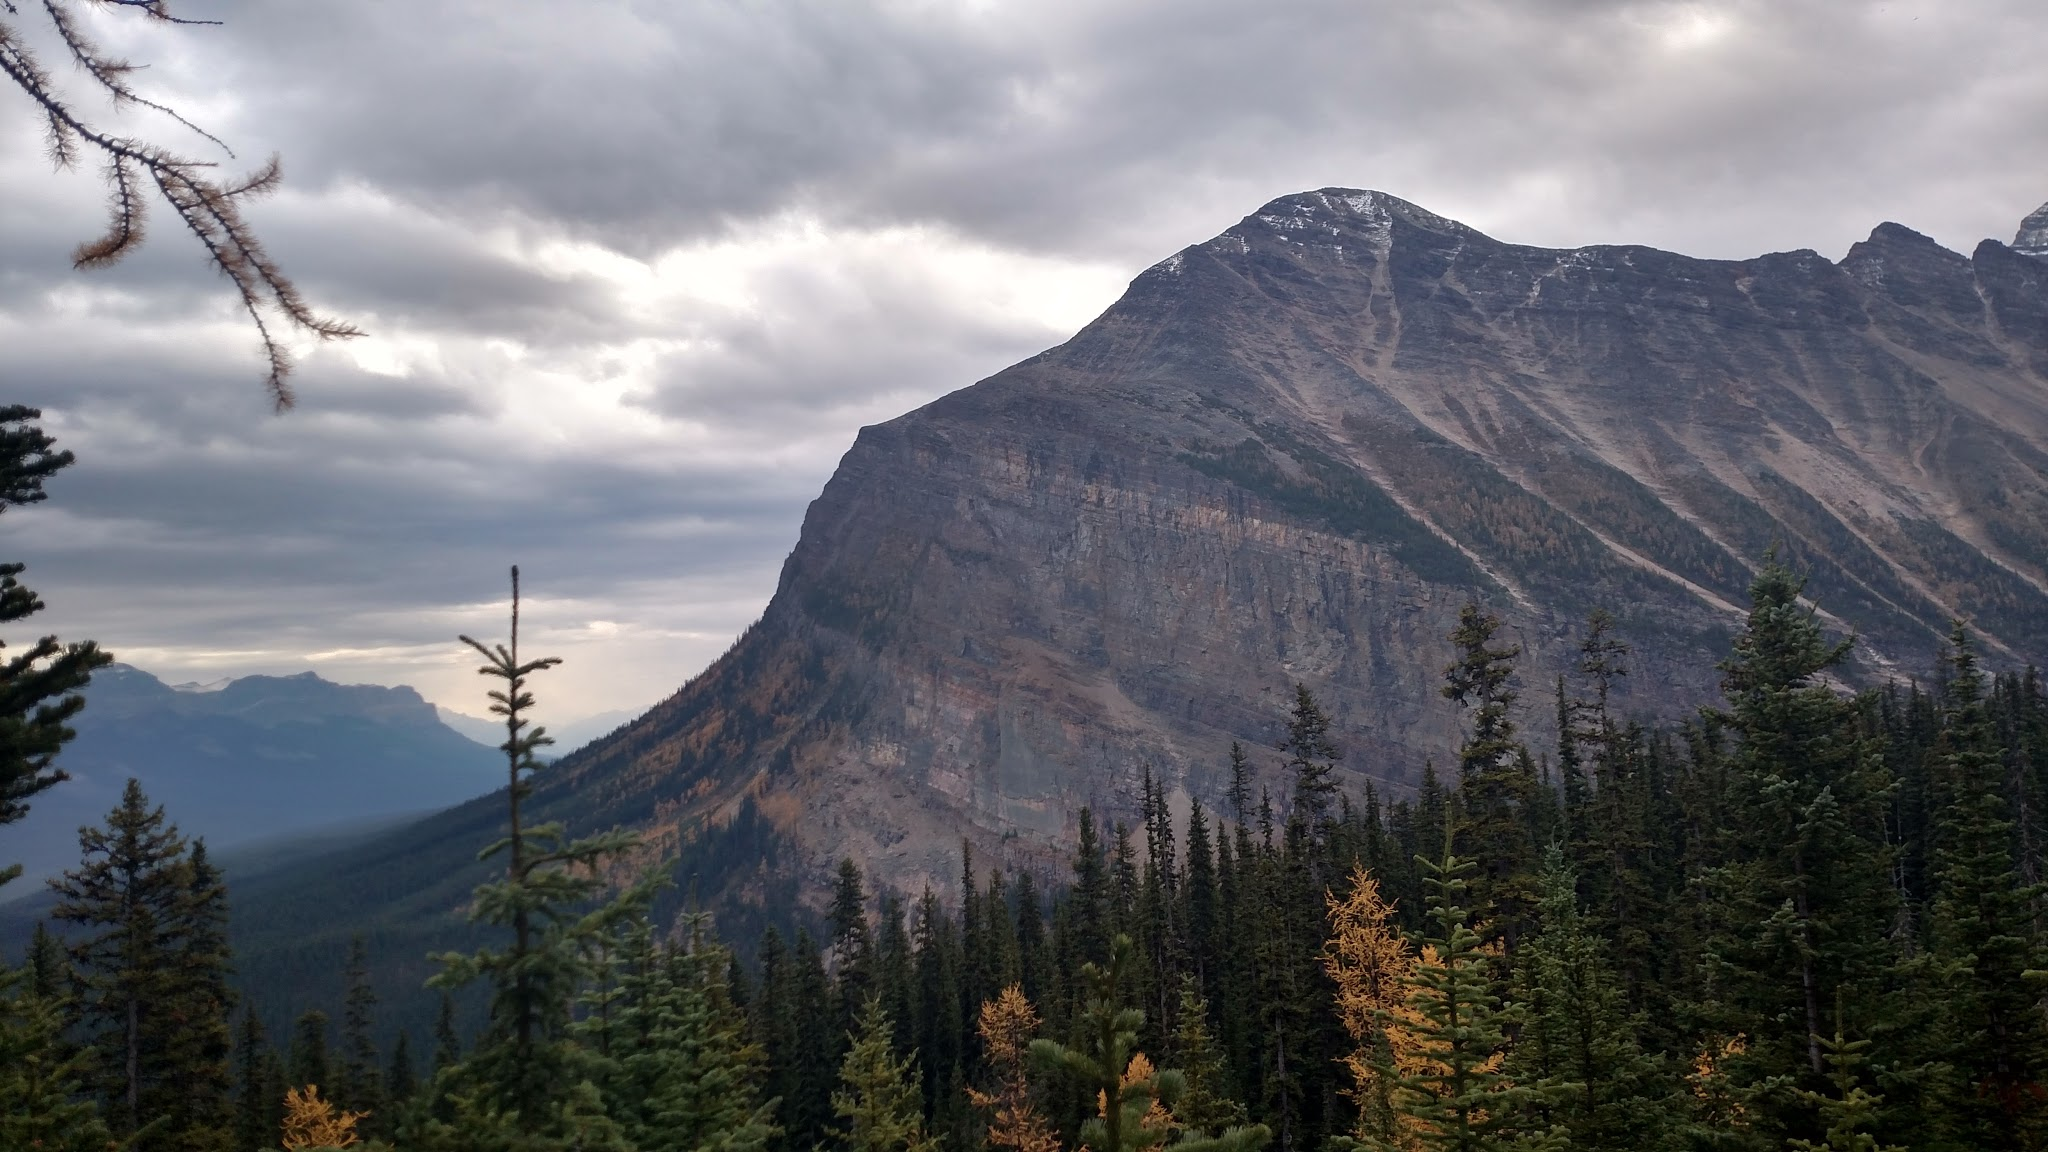 photo of mountain peak against cloudy sky with evergreen trees in foreground